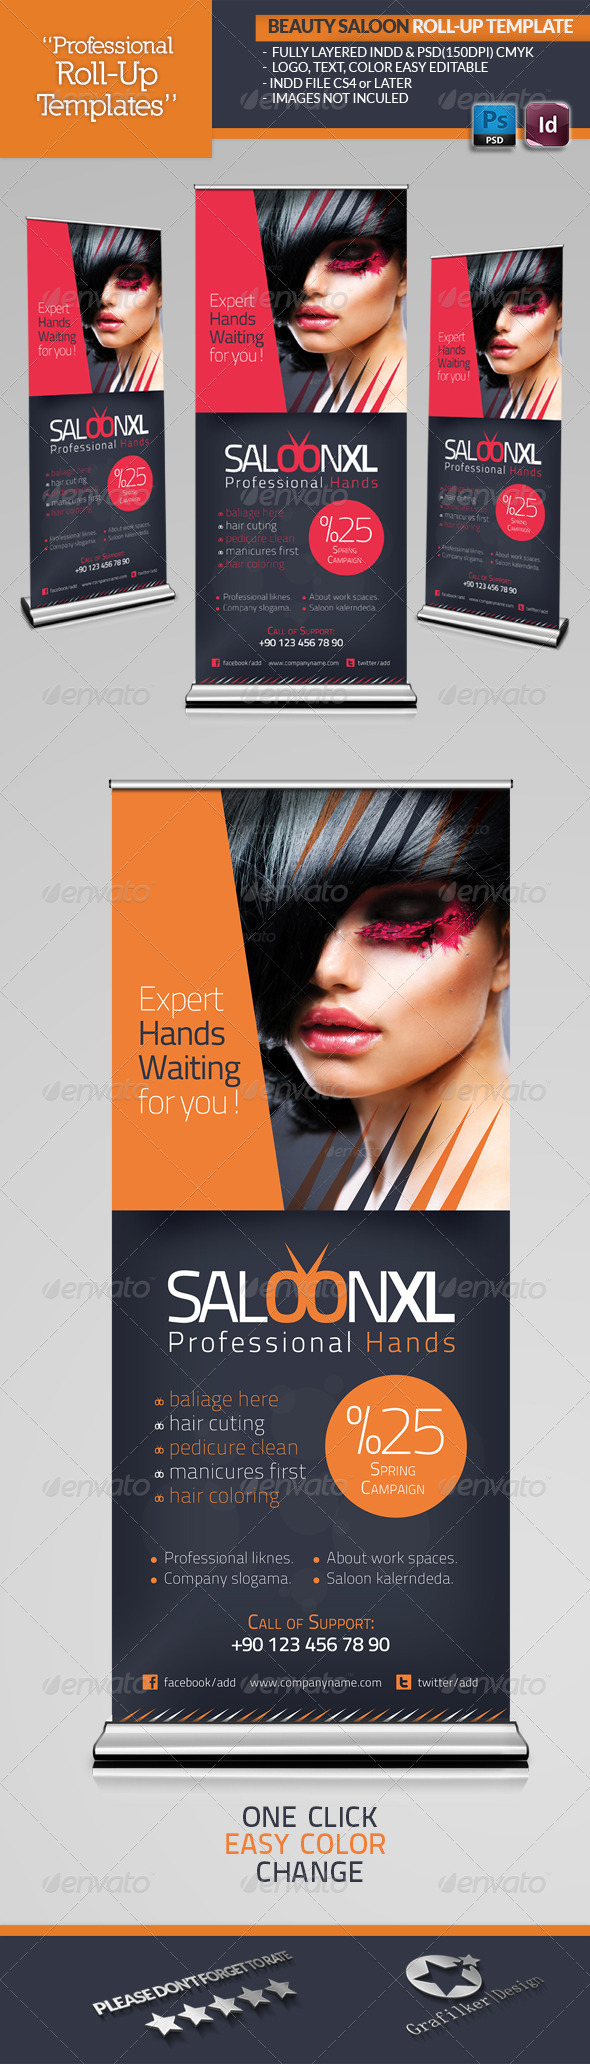 Beauty Saloon Roll-Up Template - Signage Print Templates